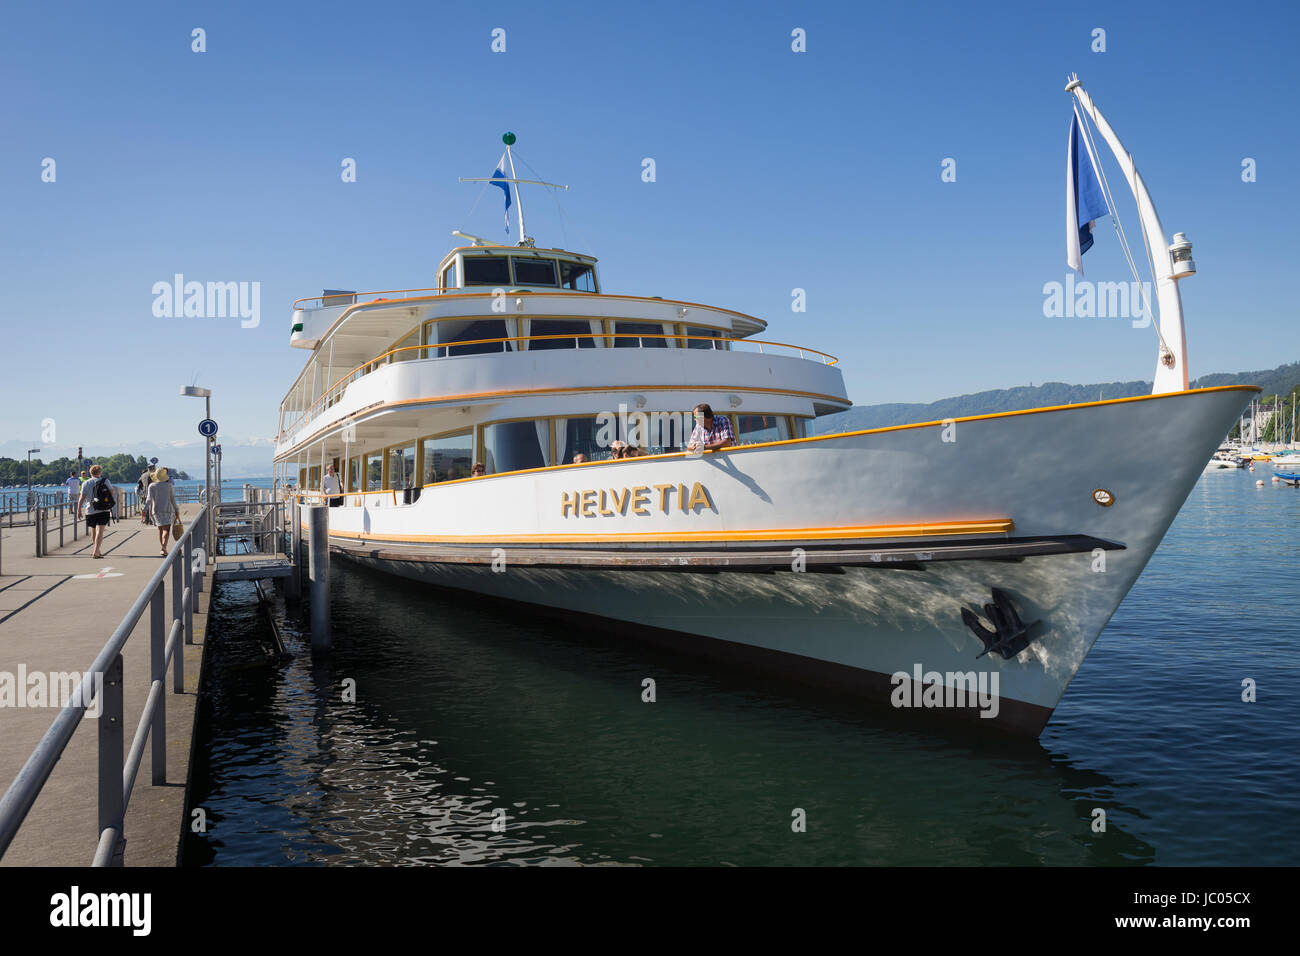 Motor ship Helvetia morred at the dock in Zurich, Switzerland. - Stock Image